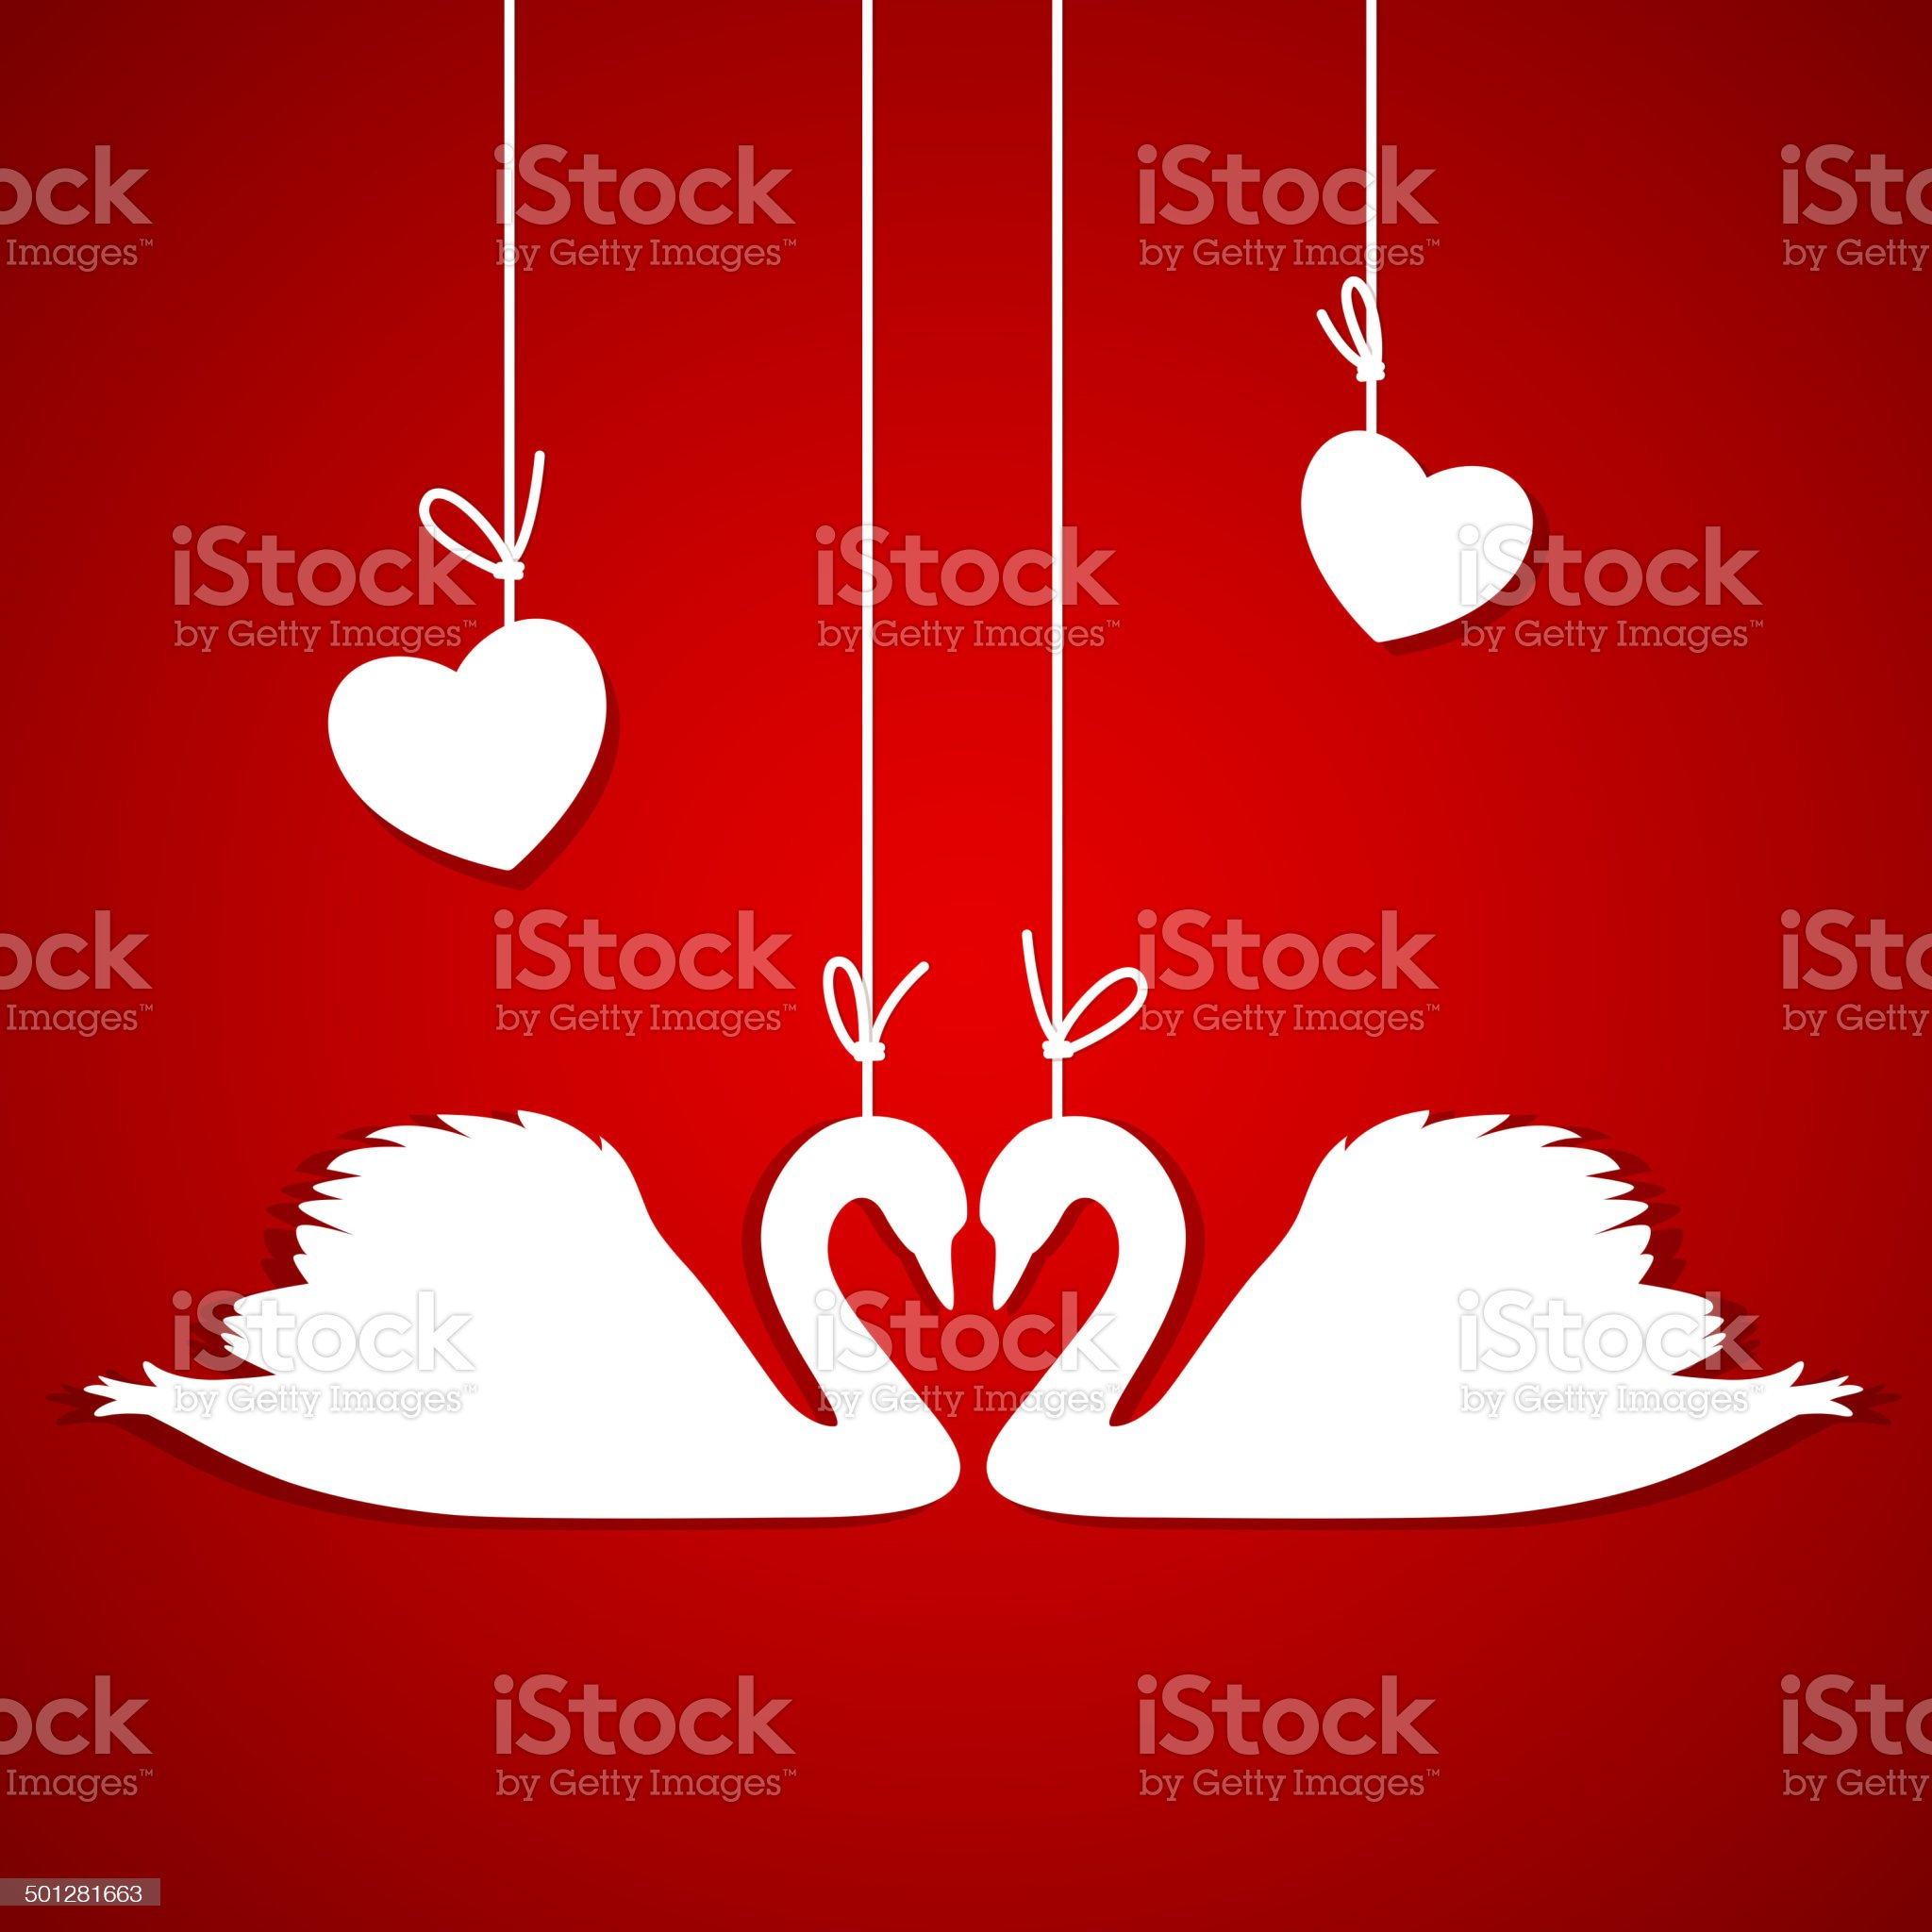 Red background with two white swans and hearts royalty-free stock vector art